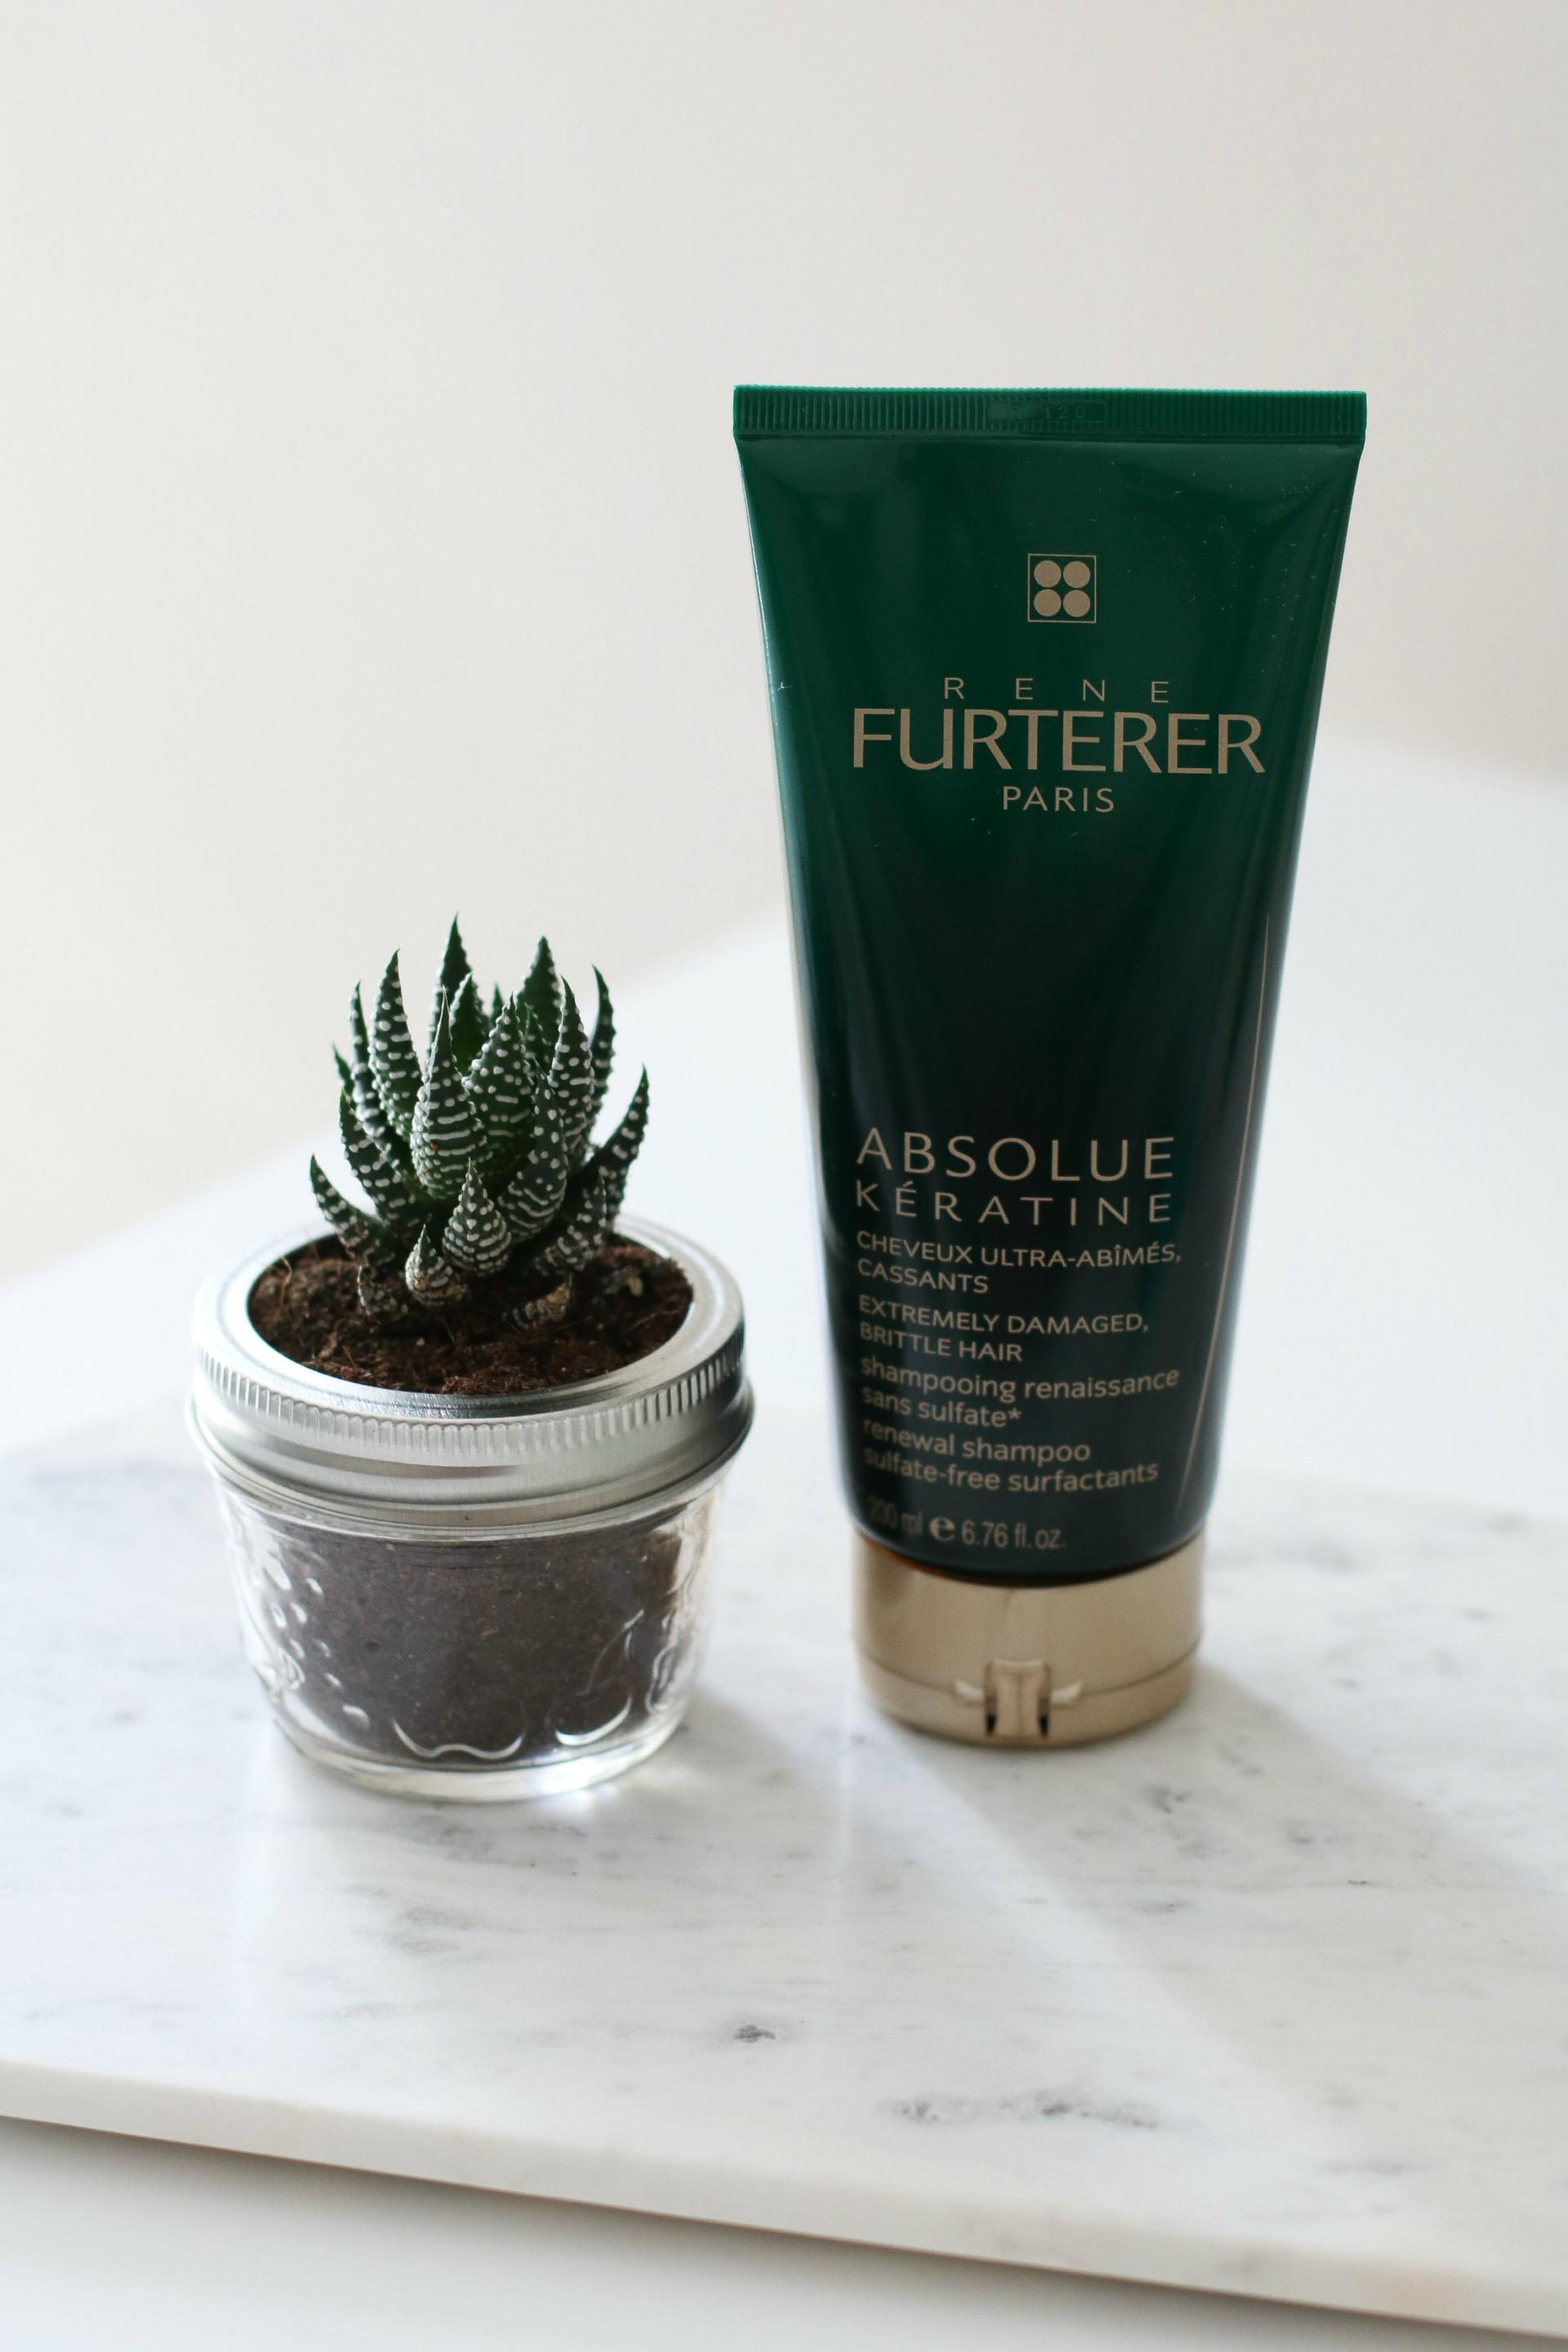 René Furterer Absolue Kératine Renewal Shampoo Sulfate-Free Surfactants